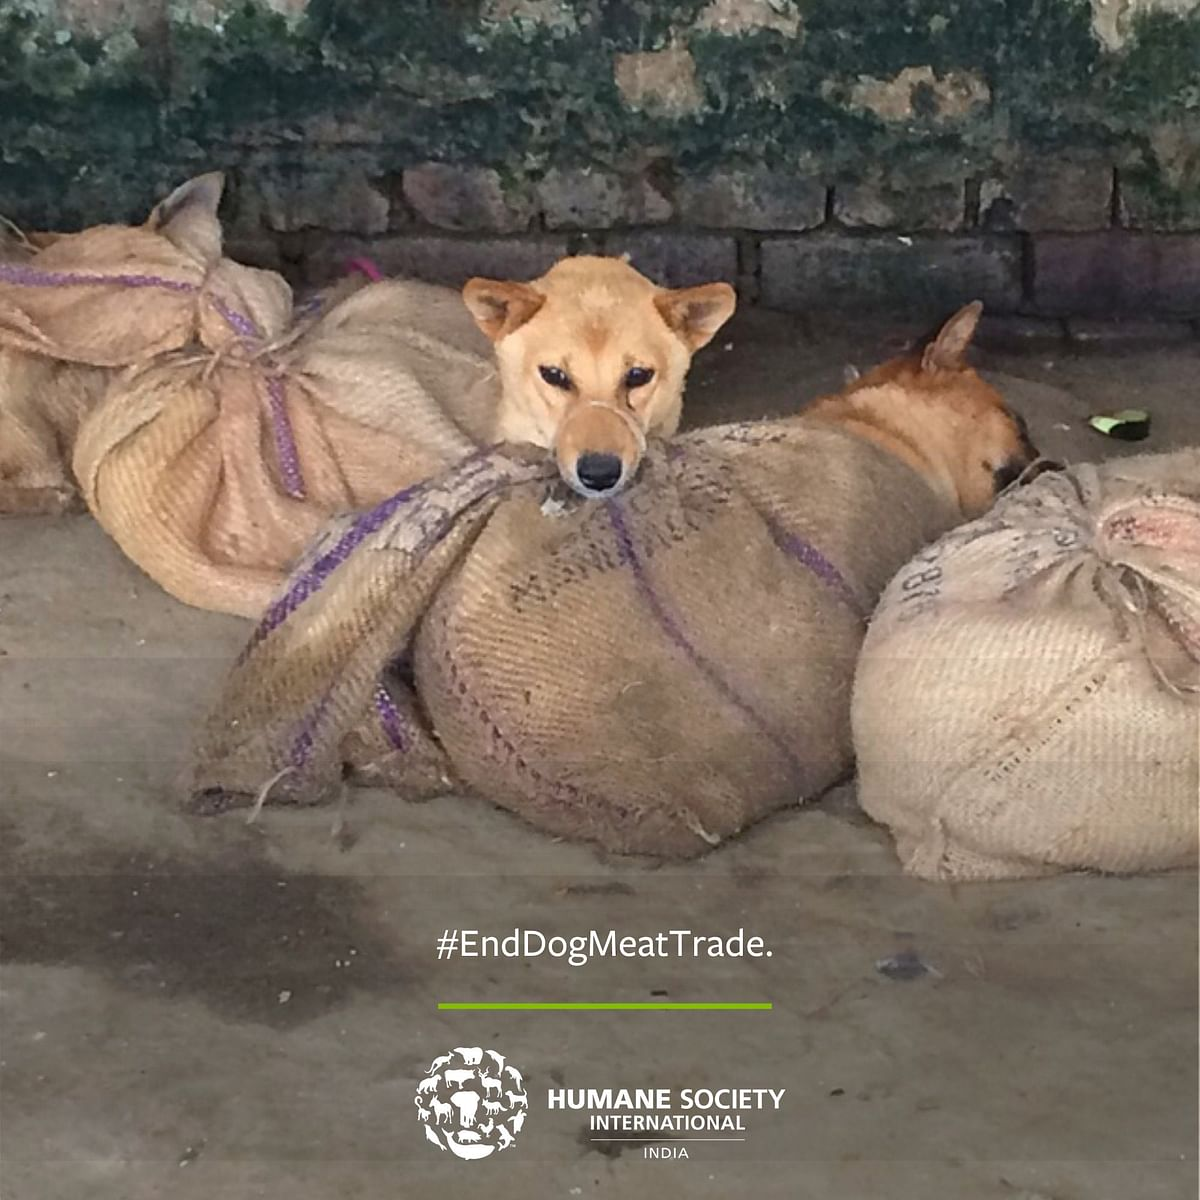 Animal activists in the recent past from 2016 have been campaigning against Nagaland for its dog meat consumption